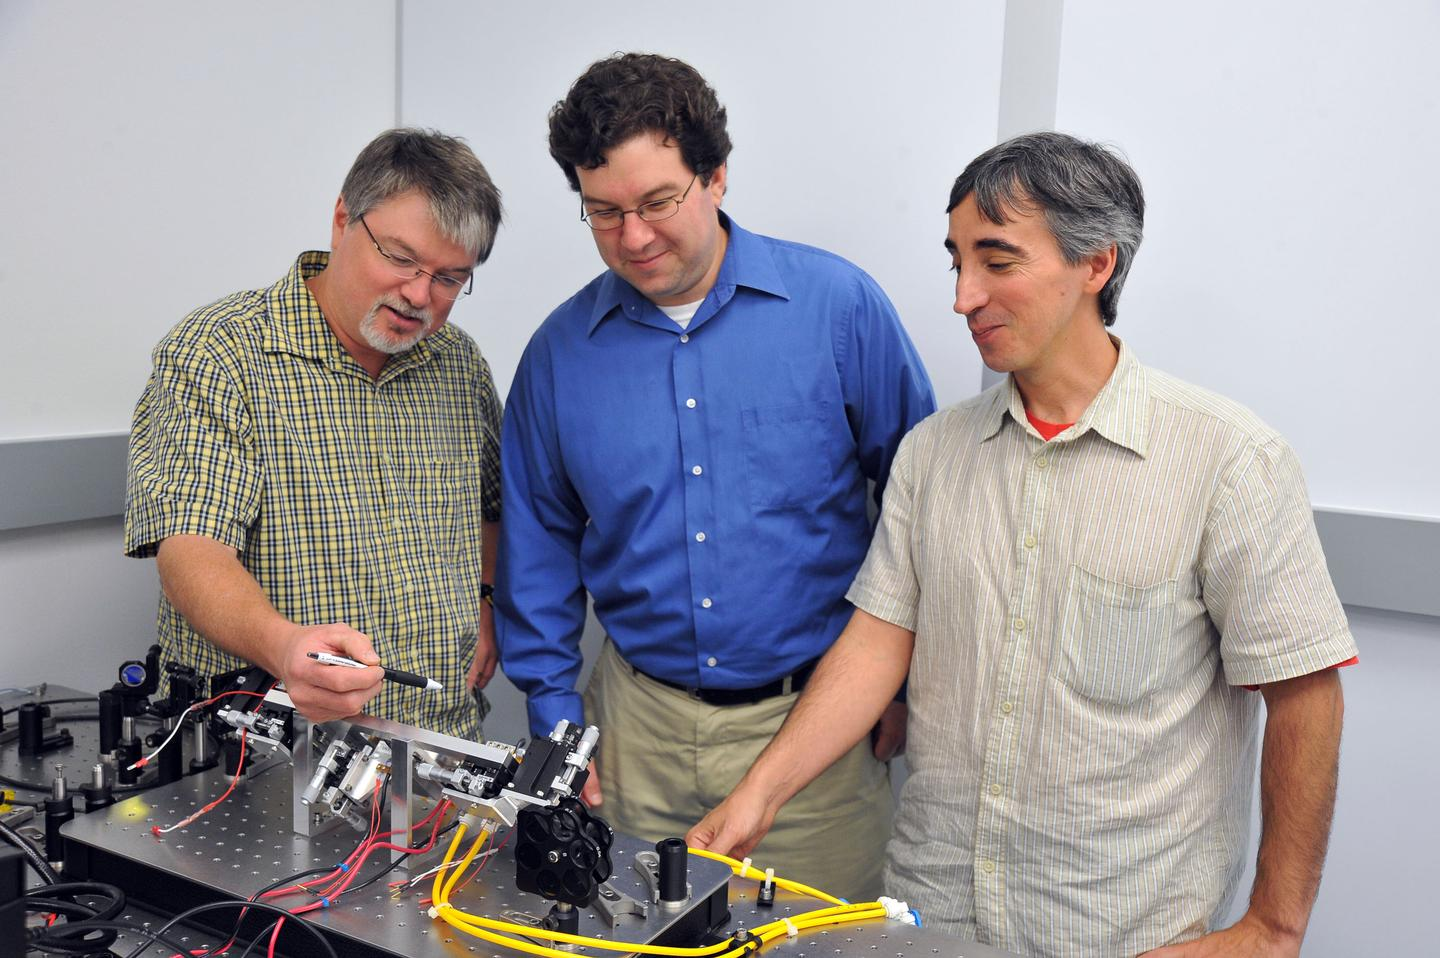 Goddard Space Flight Center's Barry Coyle, Paul Stysley, and Demetrios Poulios (L to R) have won NASA funding to study advanced technologies for collecting extraterrestrial particle samples (Image: NASA's Goddard Space Flight Center, Debora McCallum)